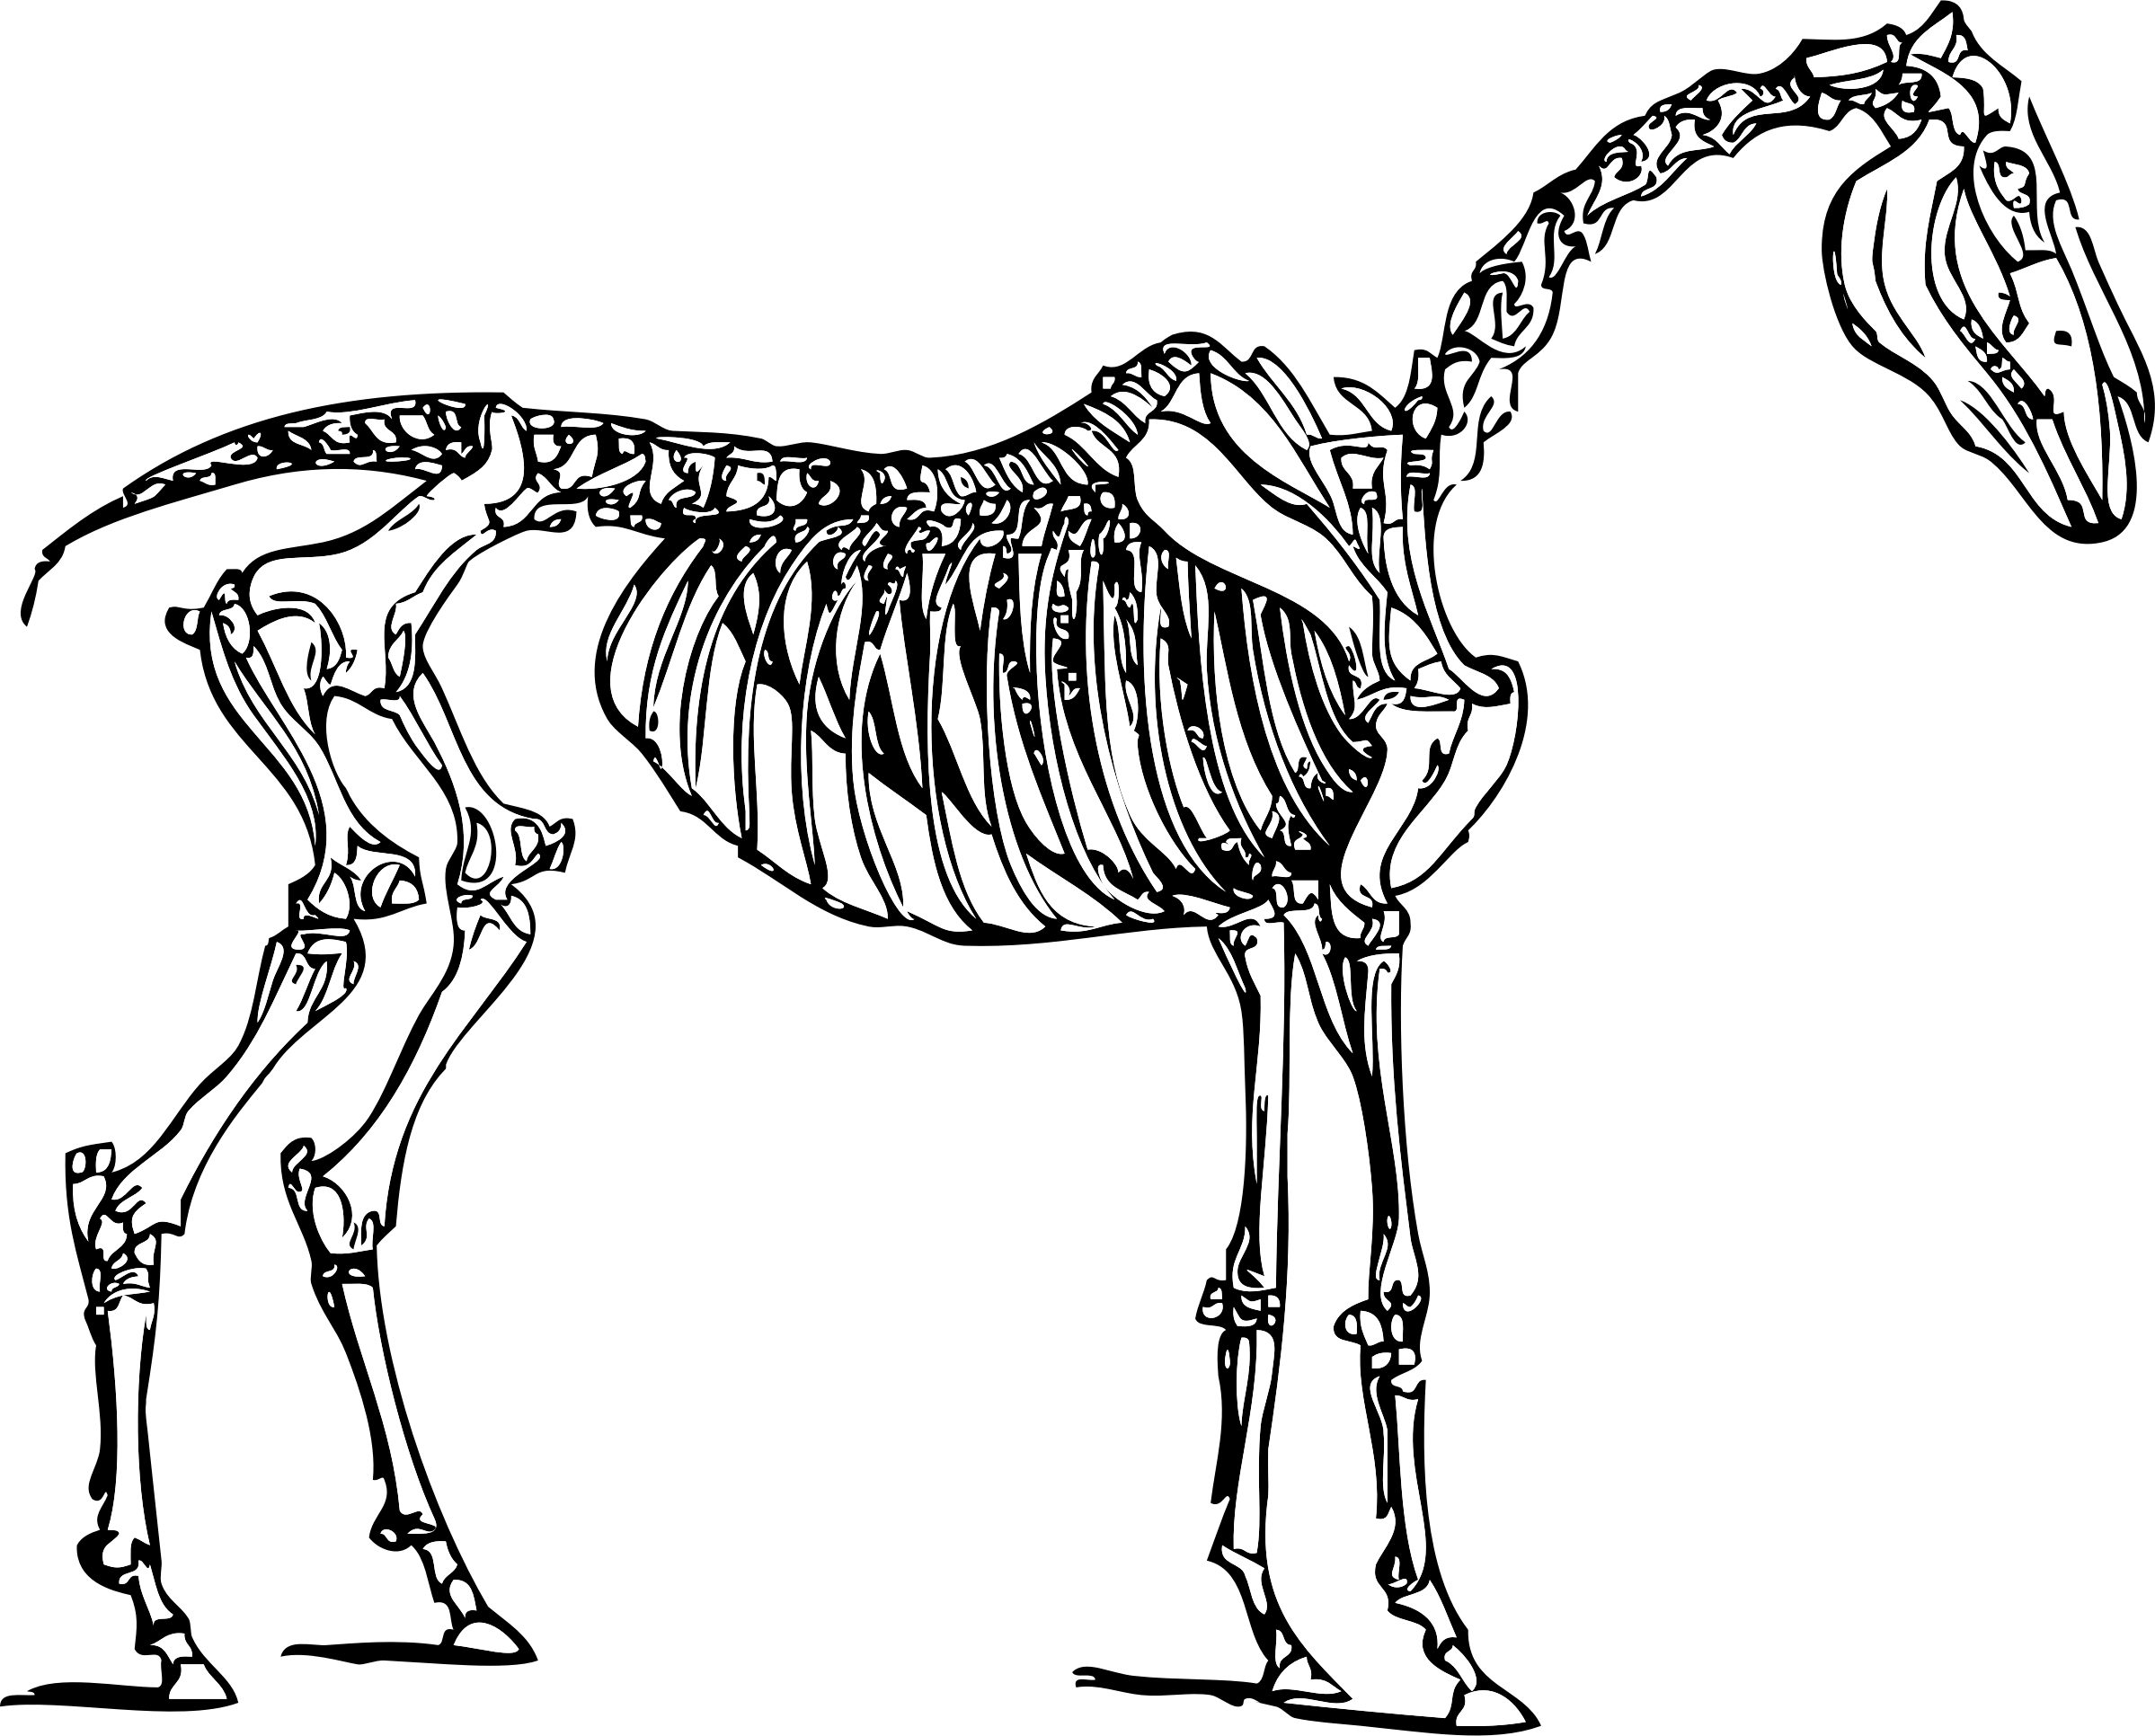 Horse halloween clipart graphic transparent stock Animal Skeleton Drawing at GetDrawings.com | Free for personal use ... graphic transparent stock